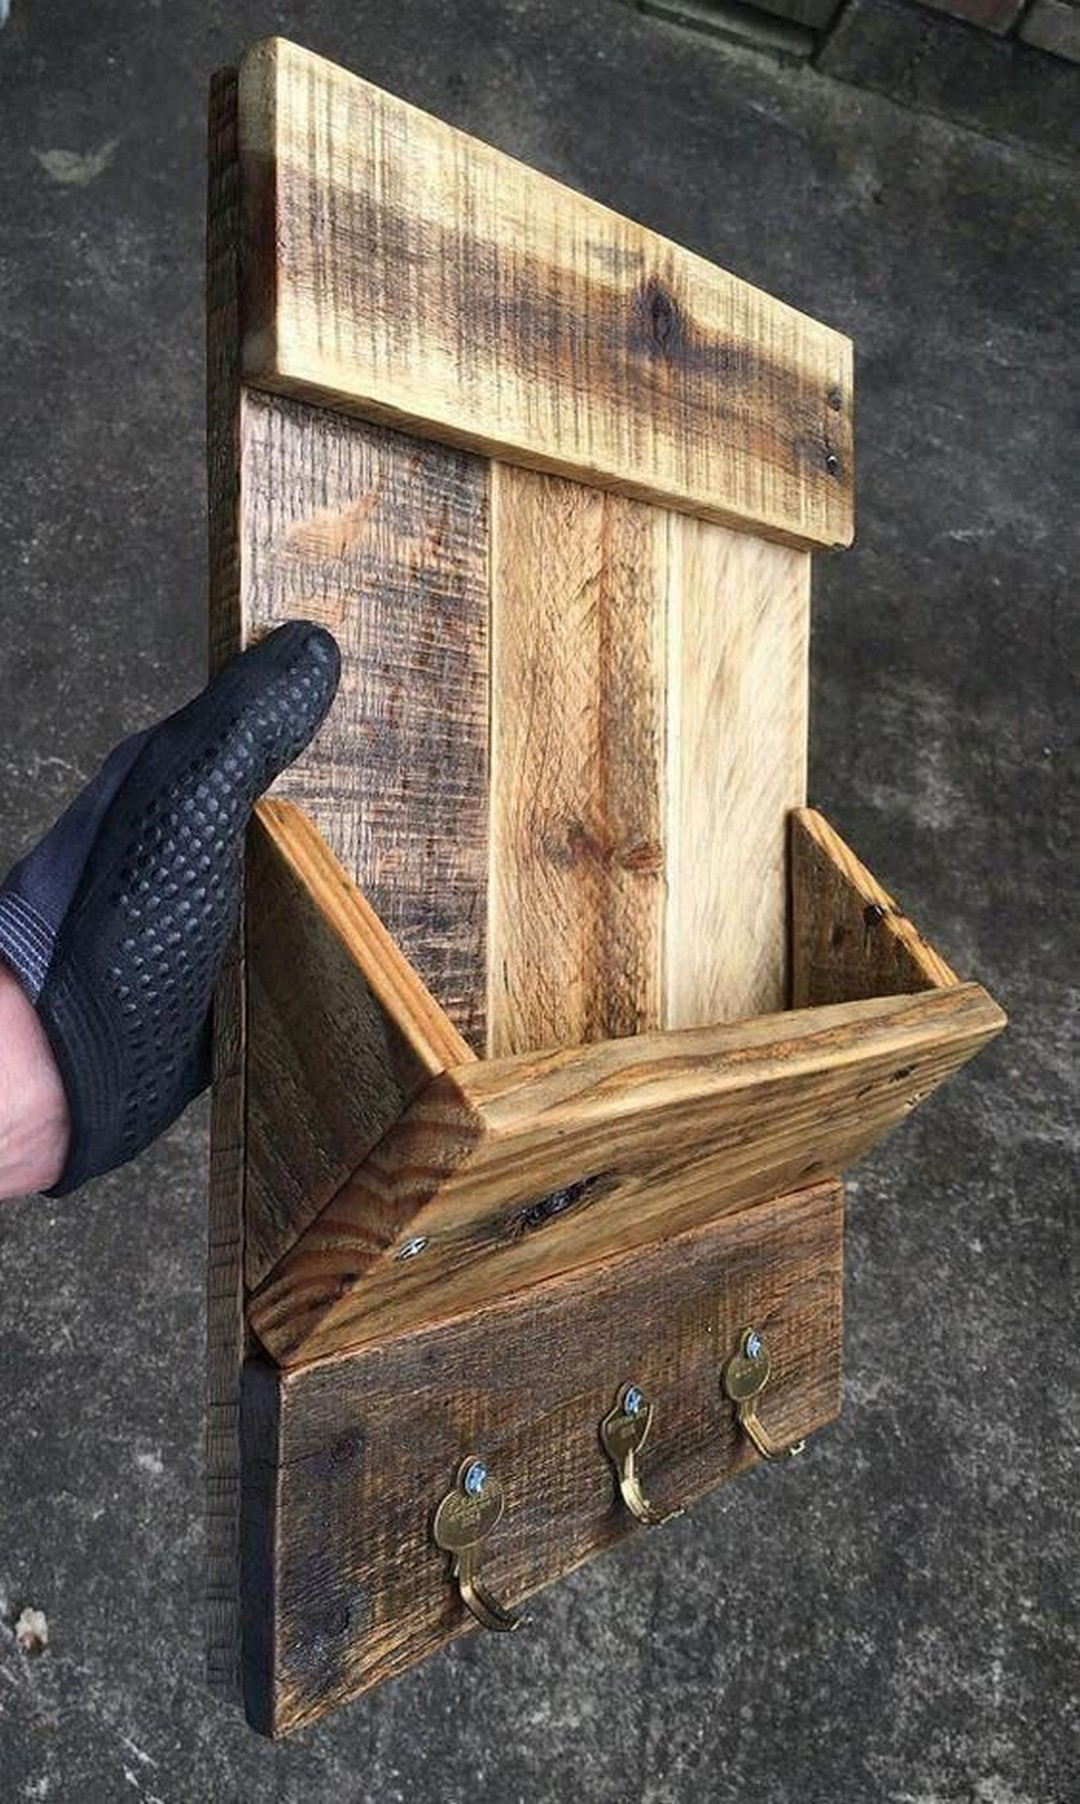 Pallet Wood Furniture, Garden, Home Project Ideas